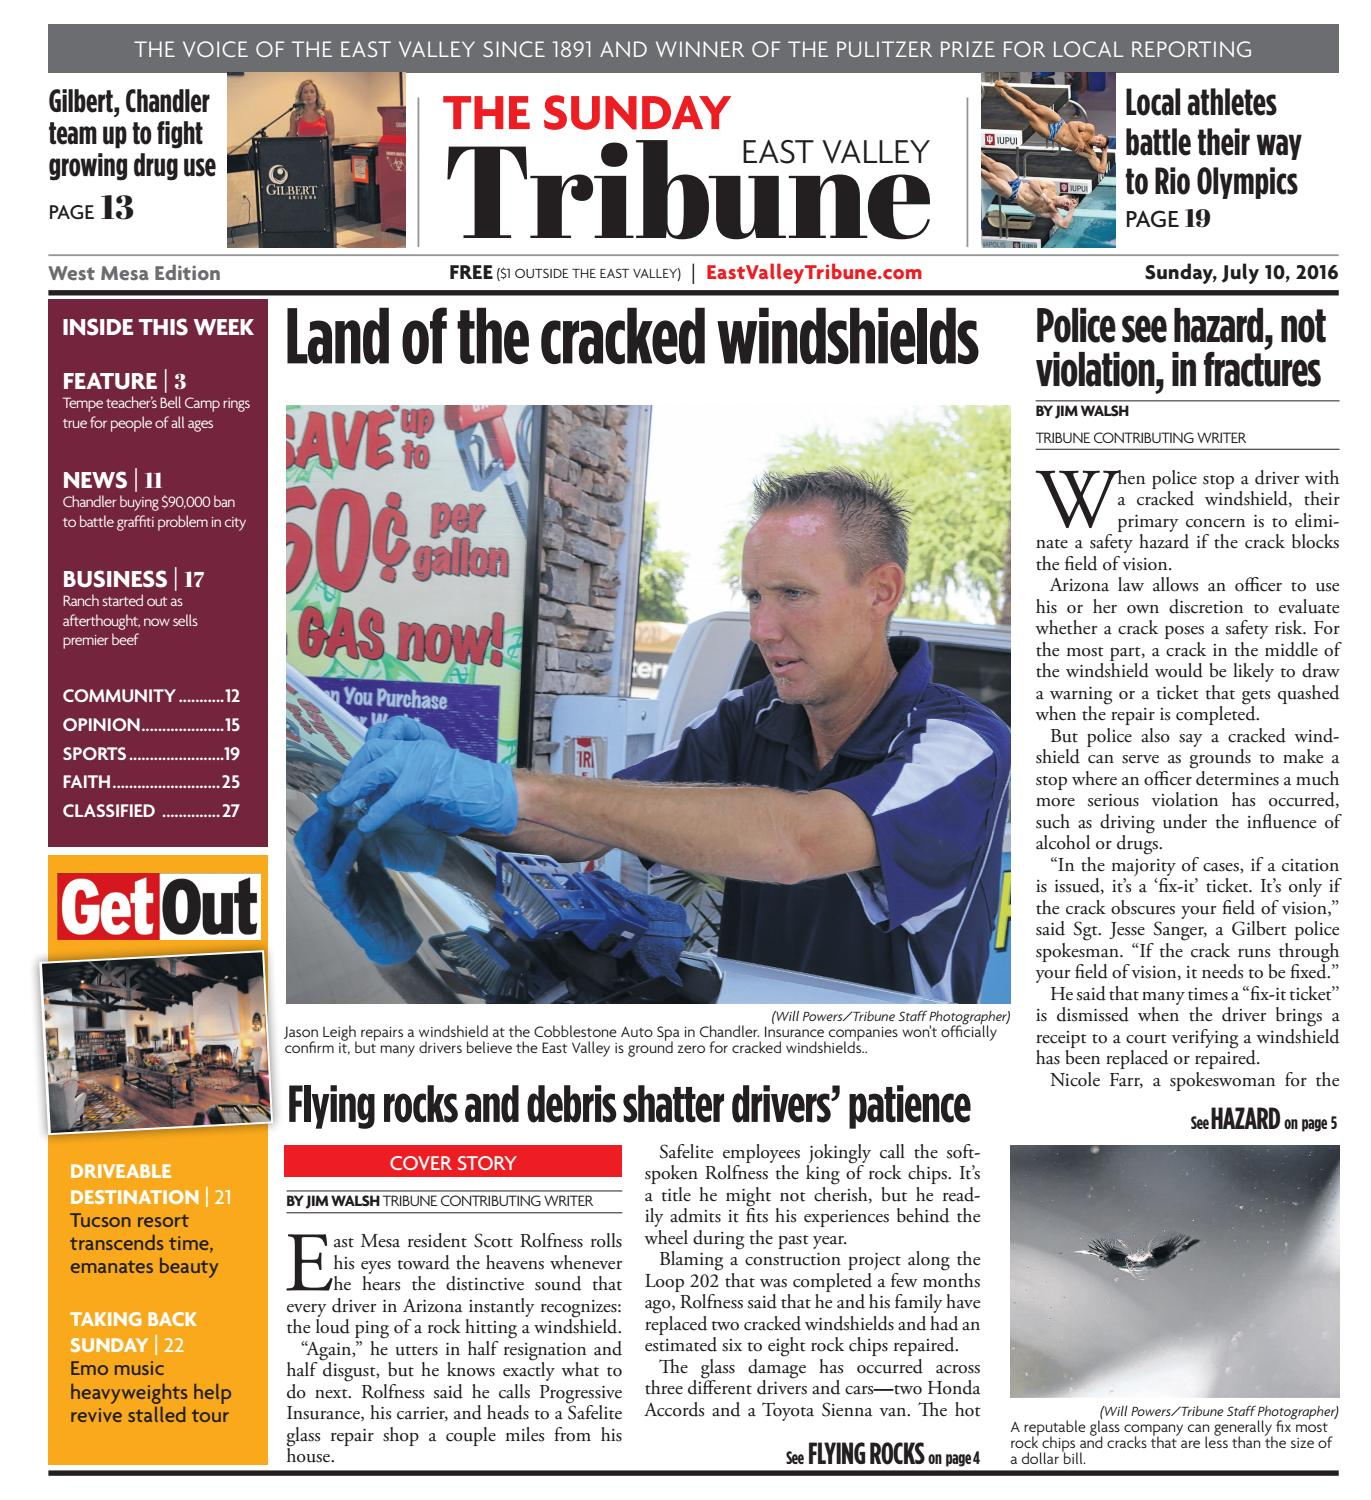 East Valley Tribune: West Mesa Edition - July 10, 2016 by